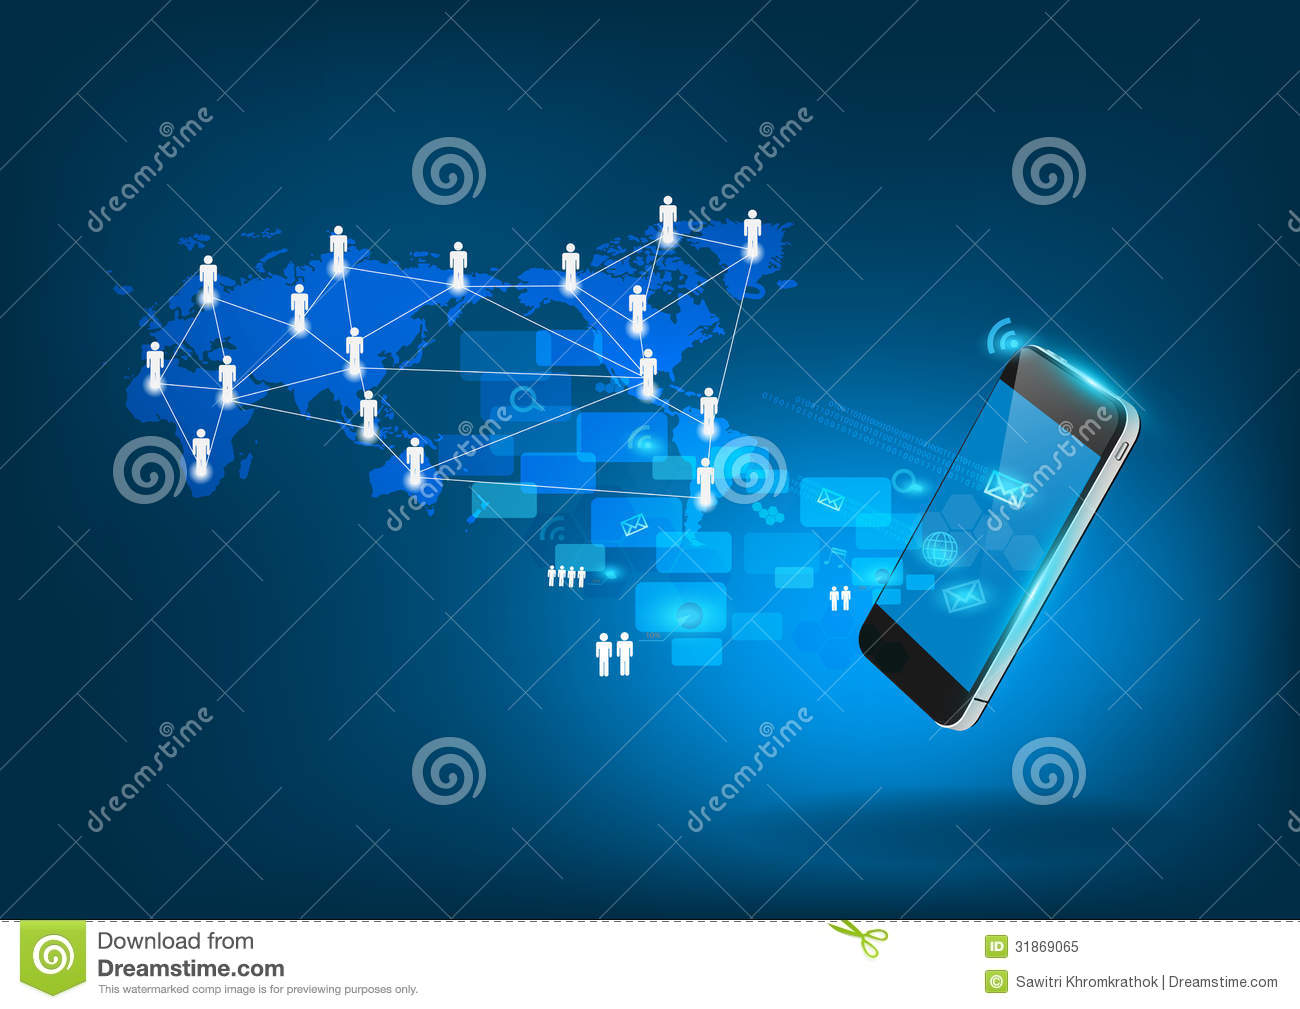 elements of communication diagram 3 gang switch wiring multiple lights vector mobile phone technology business concept royalty free stock photo - image: 31869065